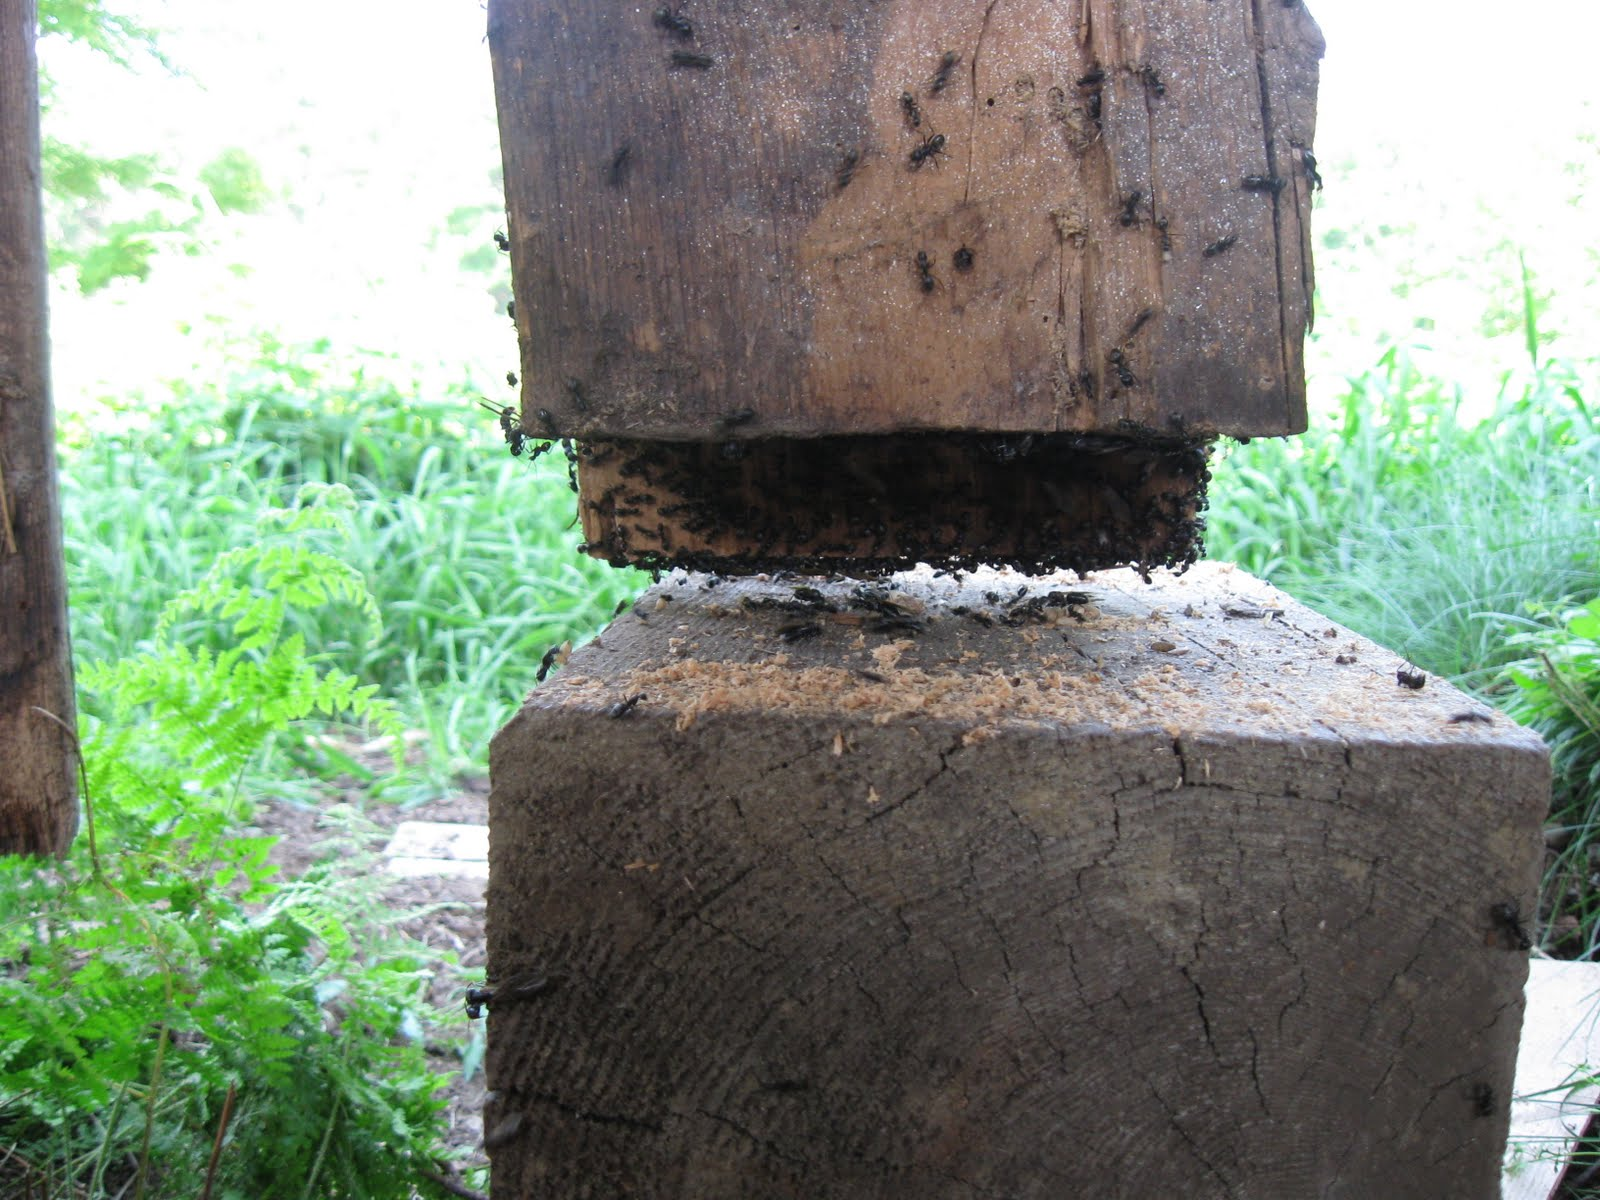 Although this post appeared to be intact at first glance, it was full of carpenter ants.